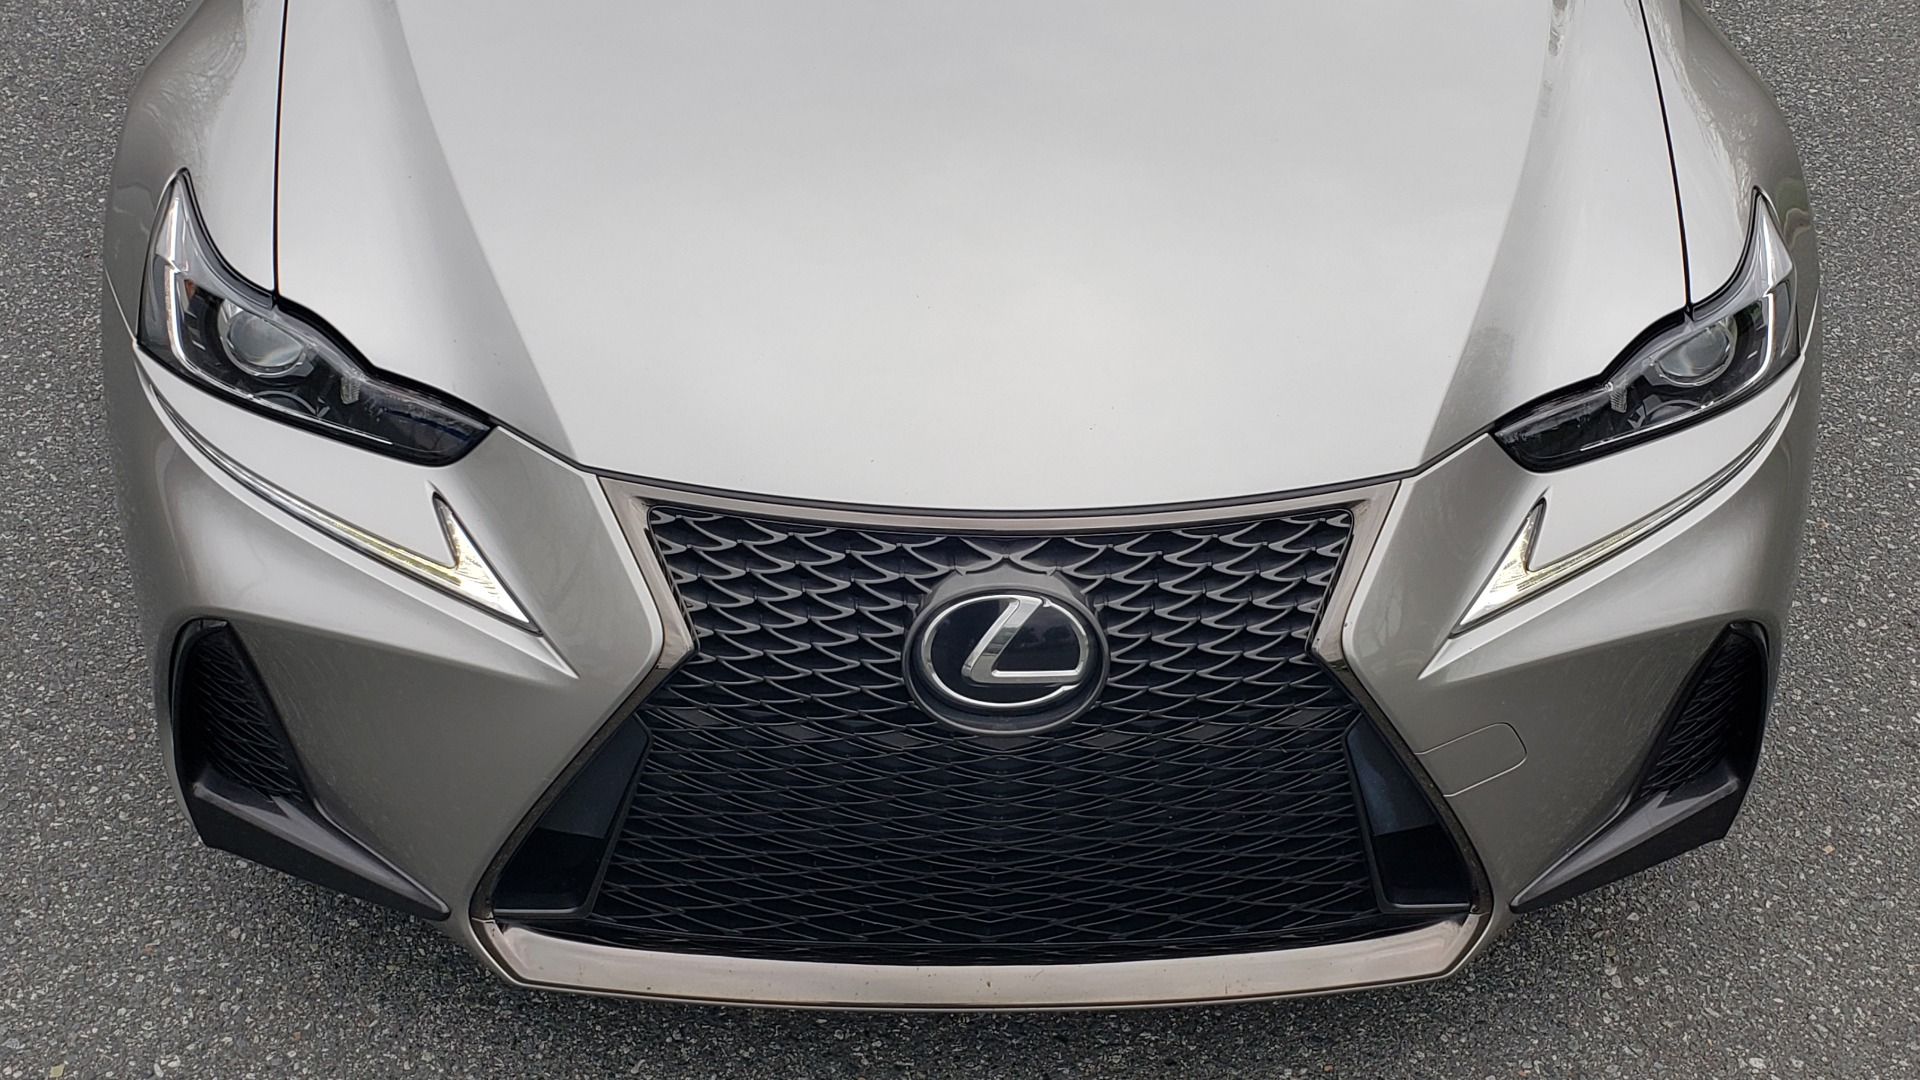 Used 2017 Lexus IS 200 TURBO F-SPORT / BSM / SUNROOF / VENT SEATS / REARVIEW for sale Sold at Formula Imports in Charlotte NC 28227 27